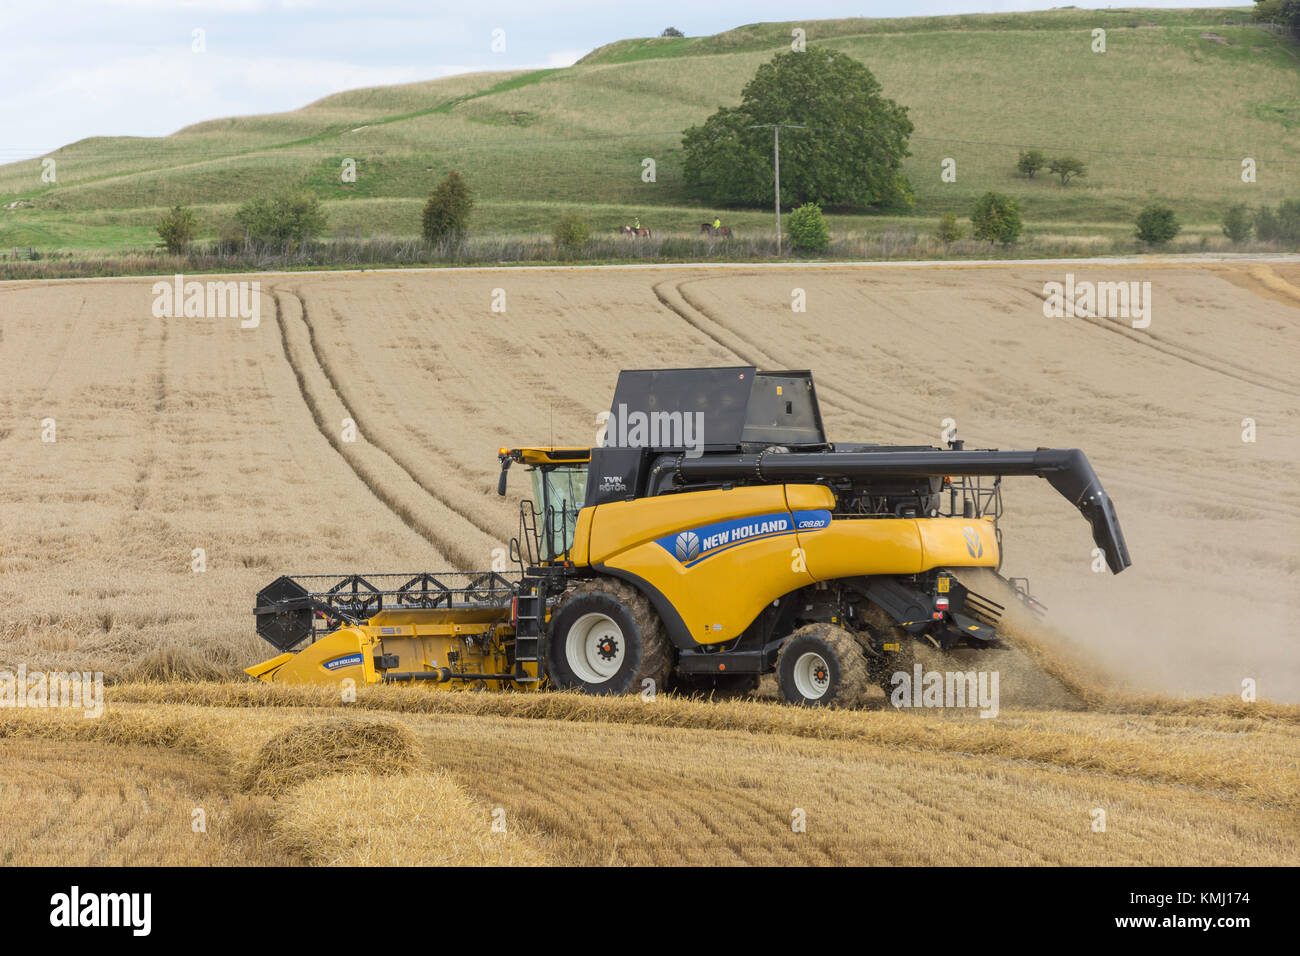 New Holland Twin Rotor Combine Harvester harvesting wheat near Didcot, Oxfordshire, England, United Kingdom - Stock Image